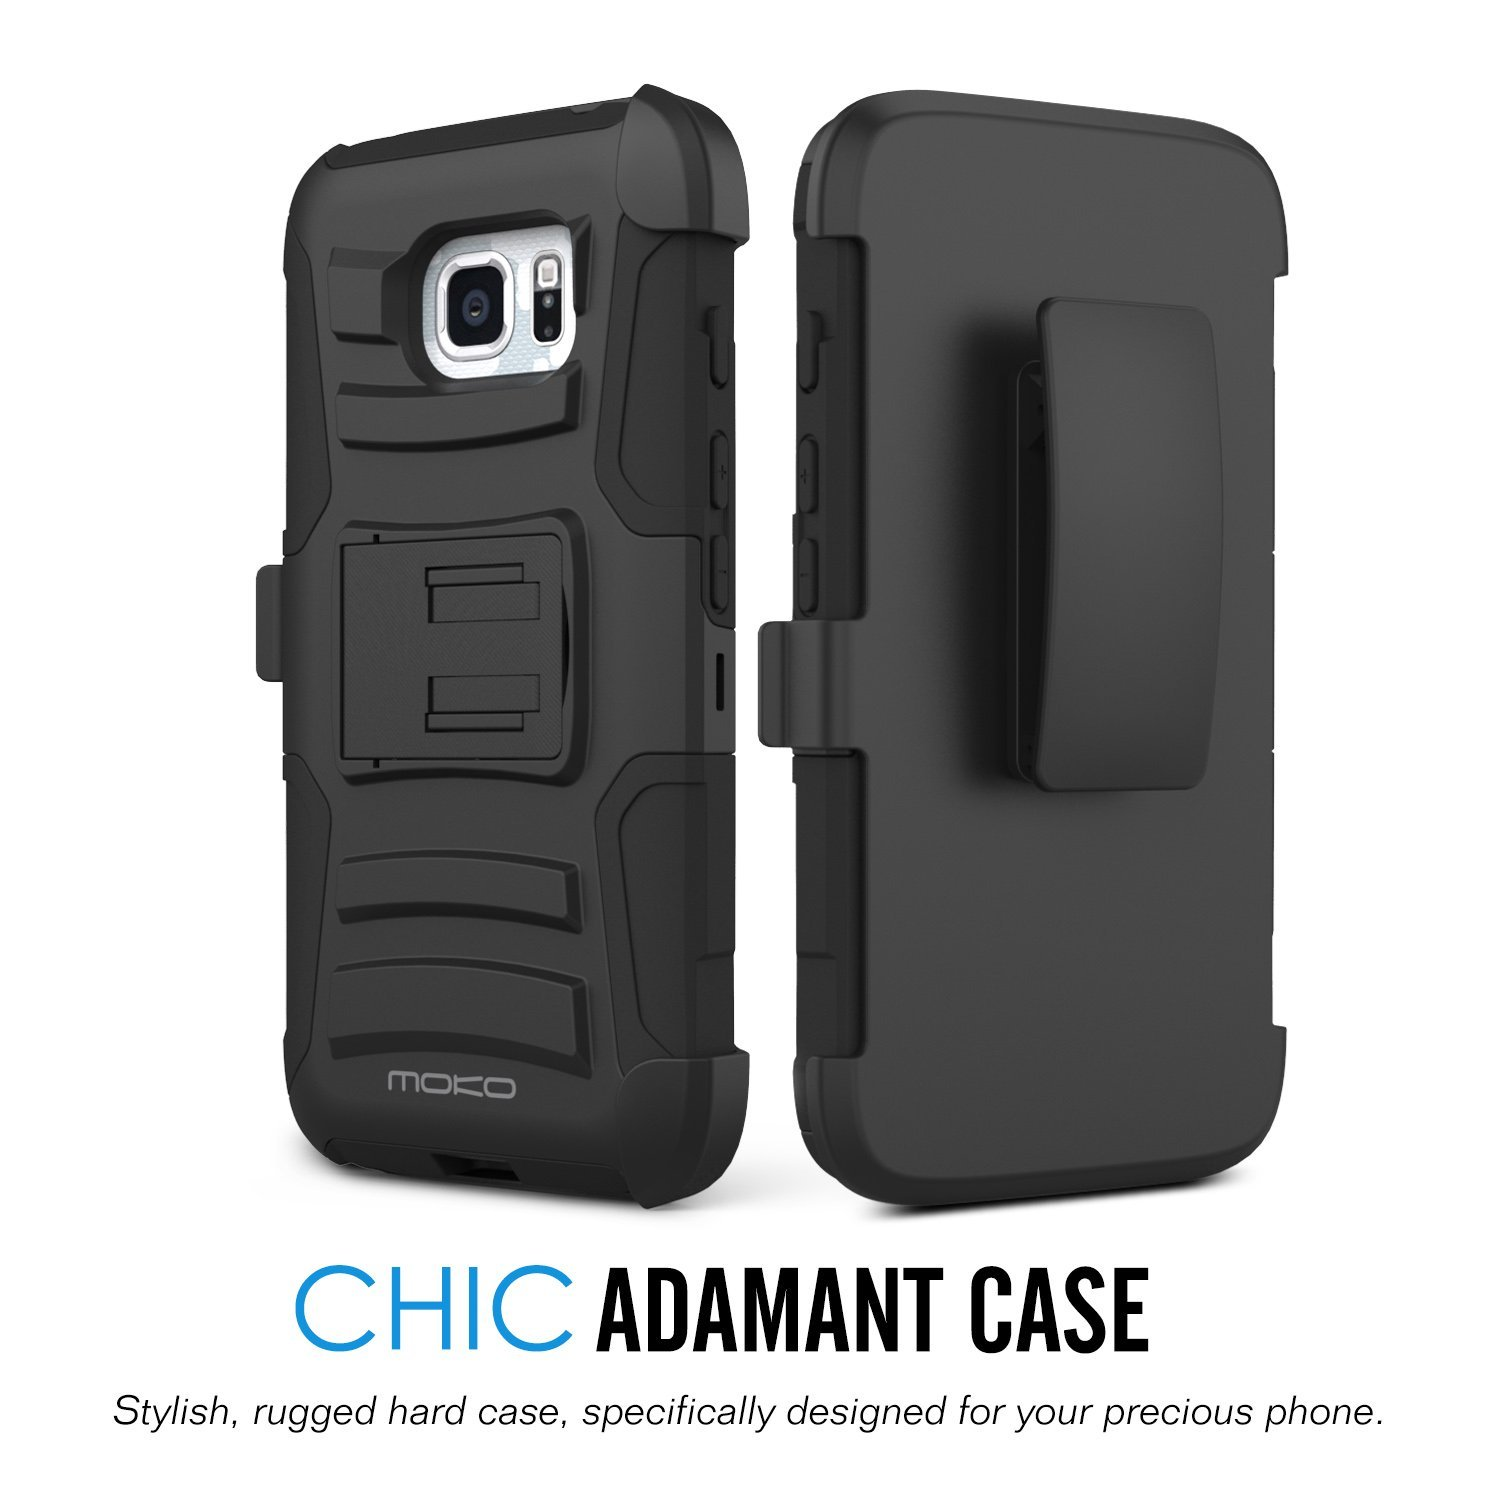 online store de547 5cbcc Galaxy S7 Active Case, MoKo Shock Absorbing Hard Cover Ultra Protective  Heavy Duty Case with Holster Belt Clip + Built-in Kickstand for Samsung  Galaxy ...